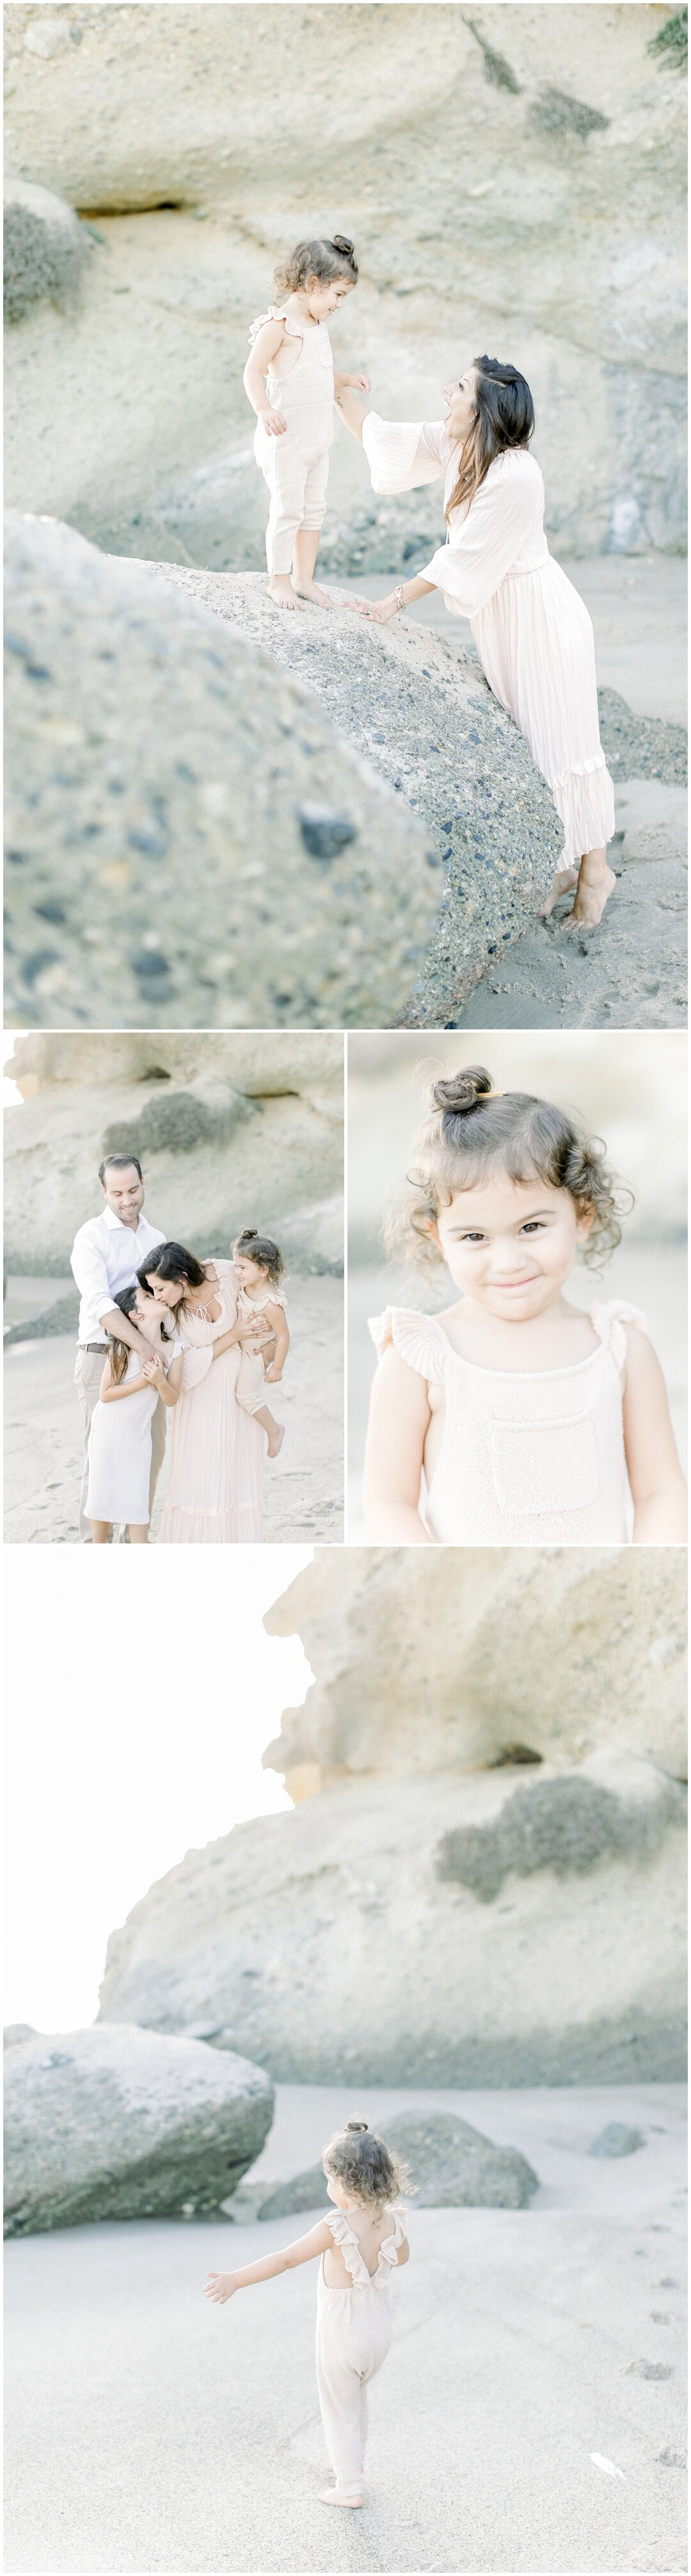 Newport+Beach+Newborn+Maternity+Photographer+Orange+County+Family+Photographer+Cori+Kleckner+Photography+Natalie+Hay+Loretz+Robert+Hay+The+Hay+Family_4435.jpg